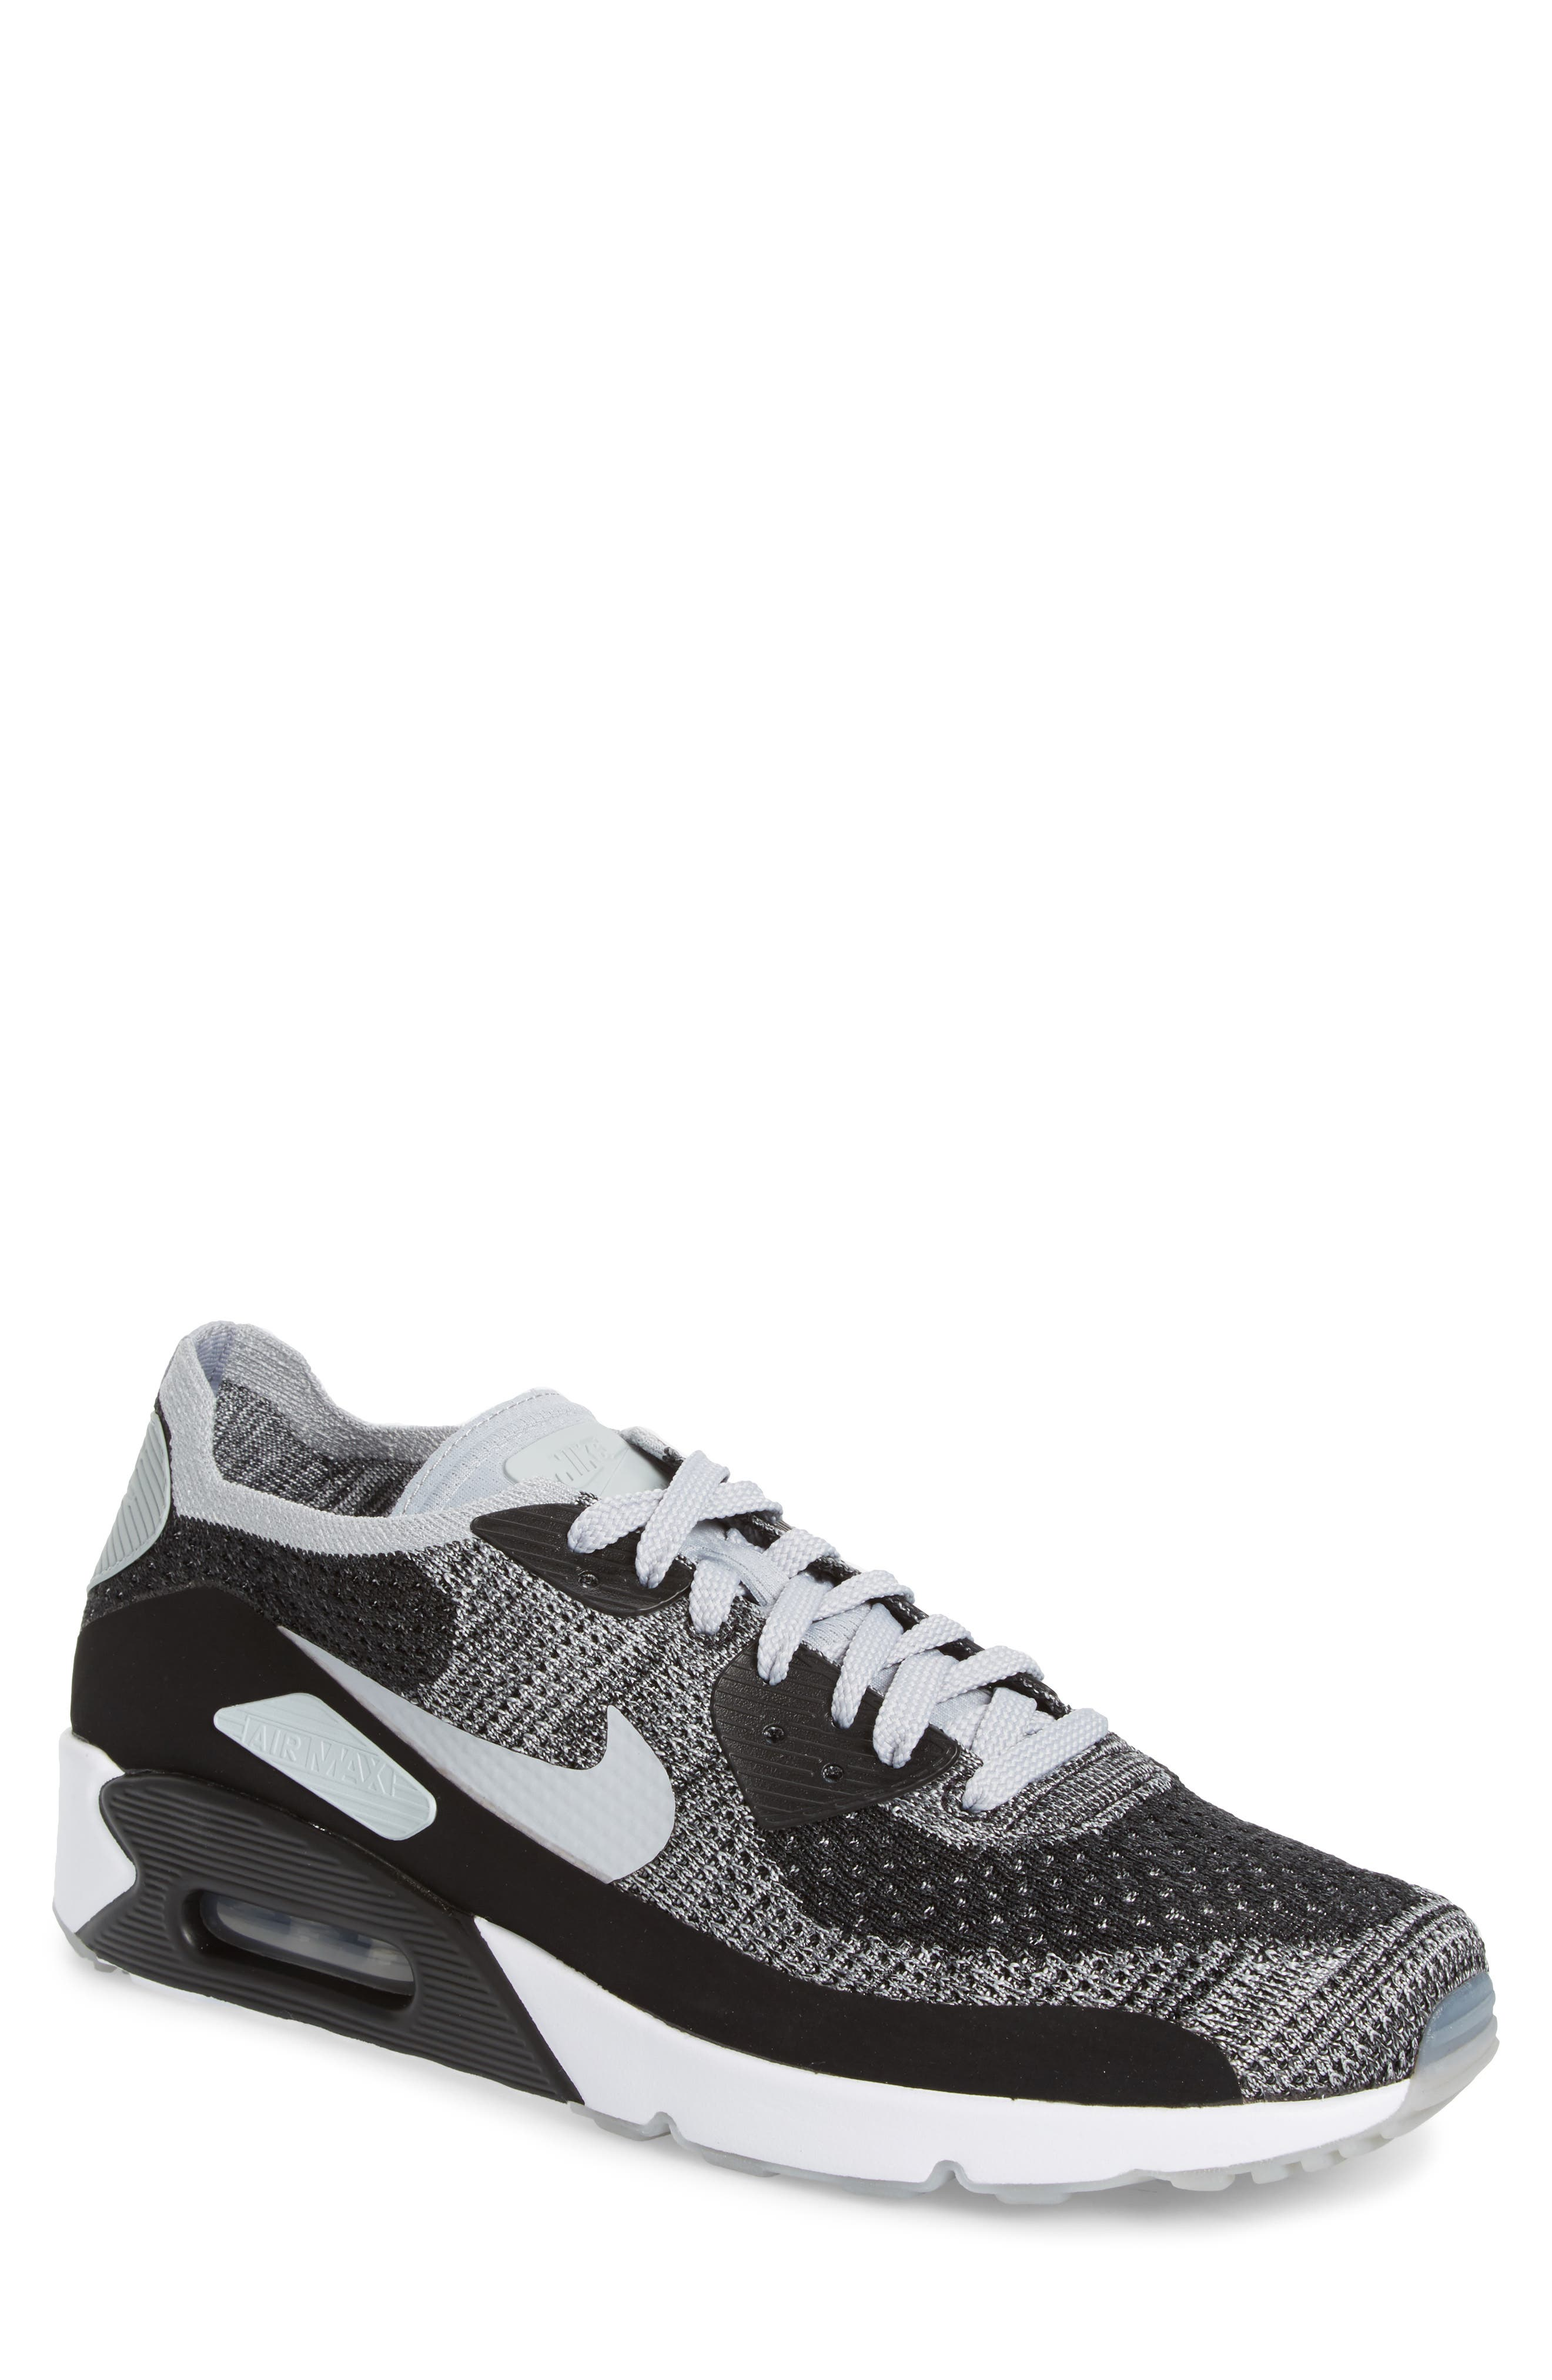 Air Max 90 Ultra 2.0 Flyknit Sneaker,                         Main,                         color, 005